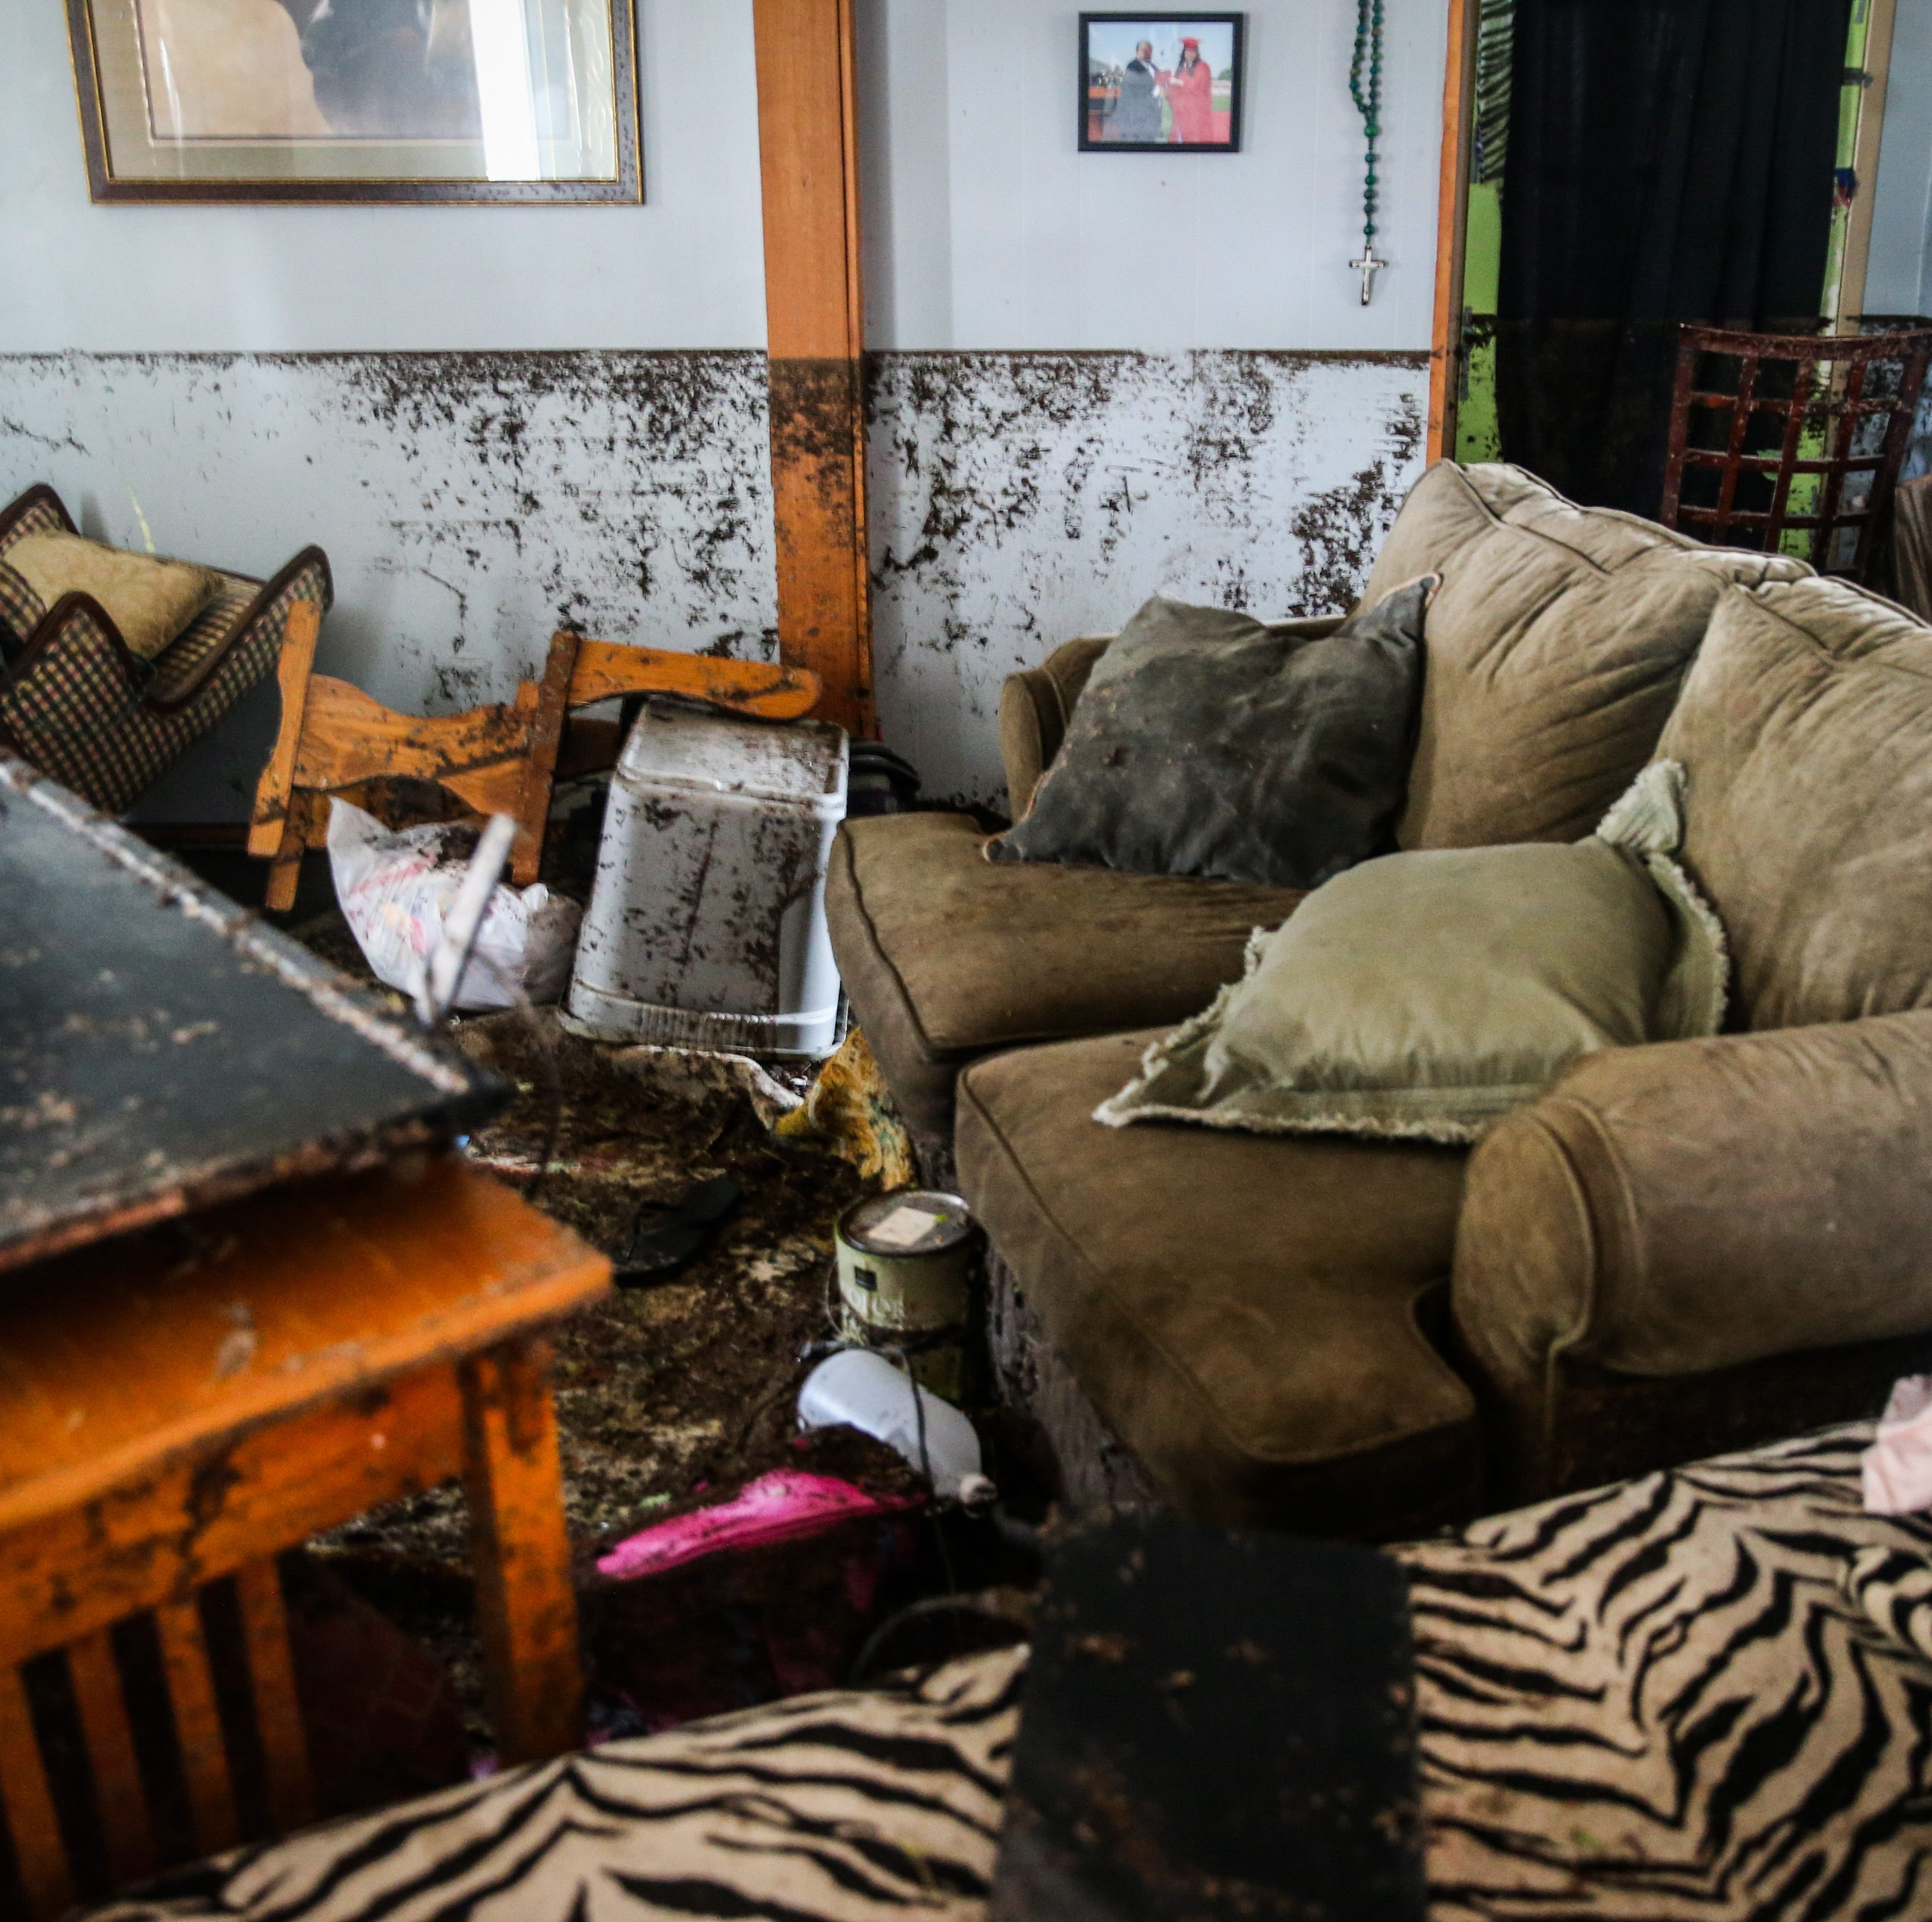 Sonora flooding damaged more than 200 homes and some will be demolished, officials say